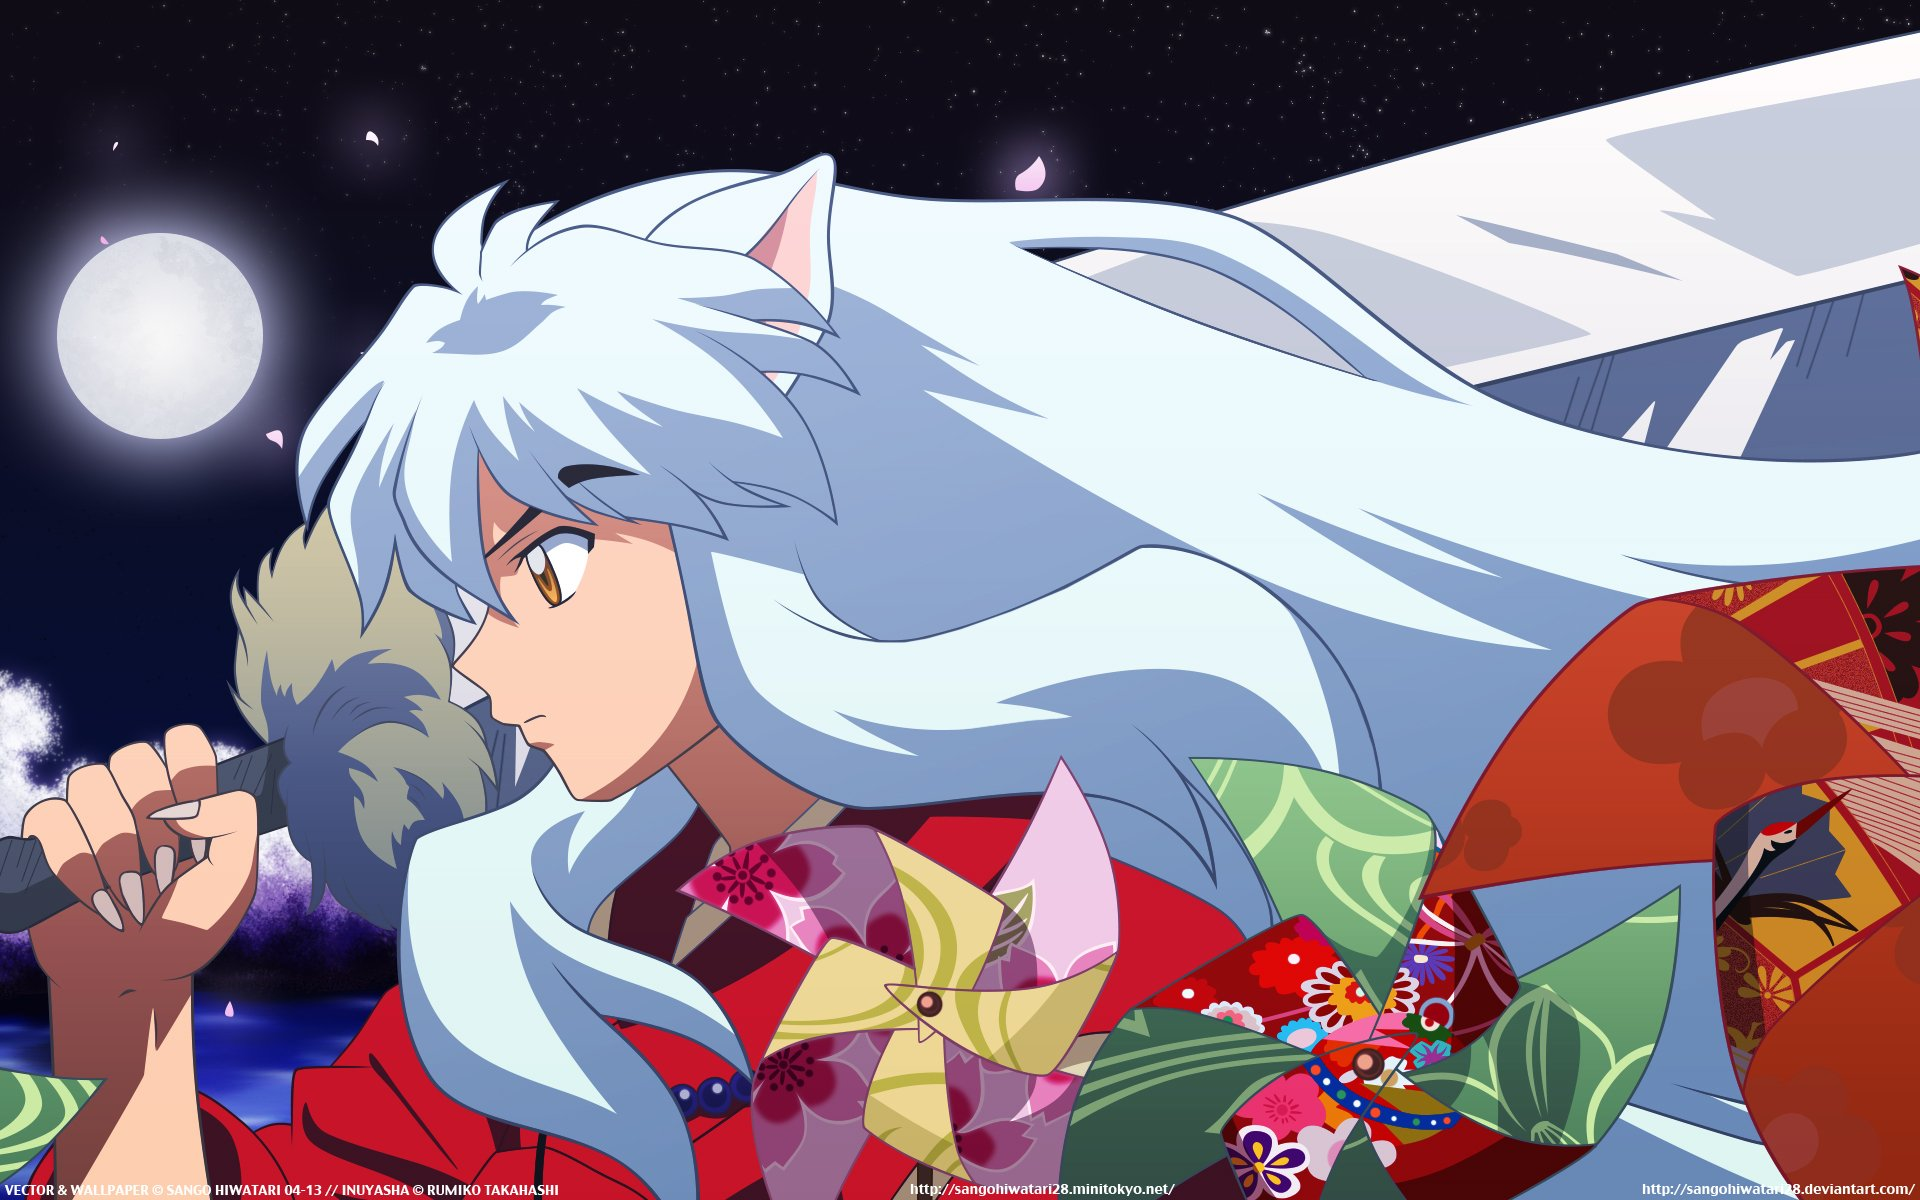 Inuyasha Hentai Gif Awesome inuyasha background - wallpapersafari